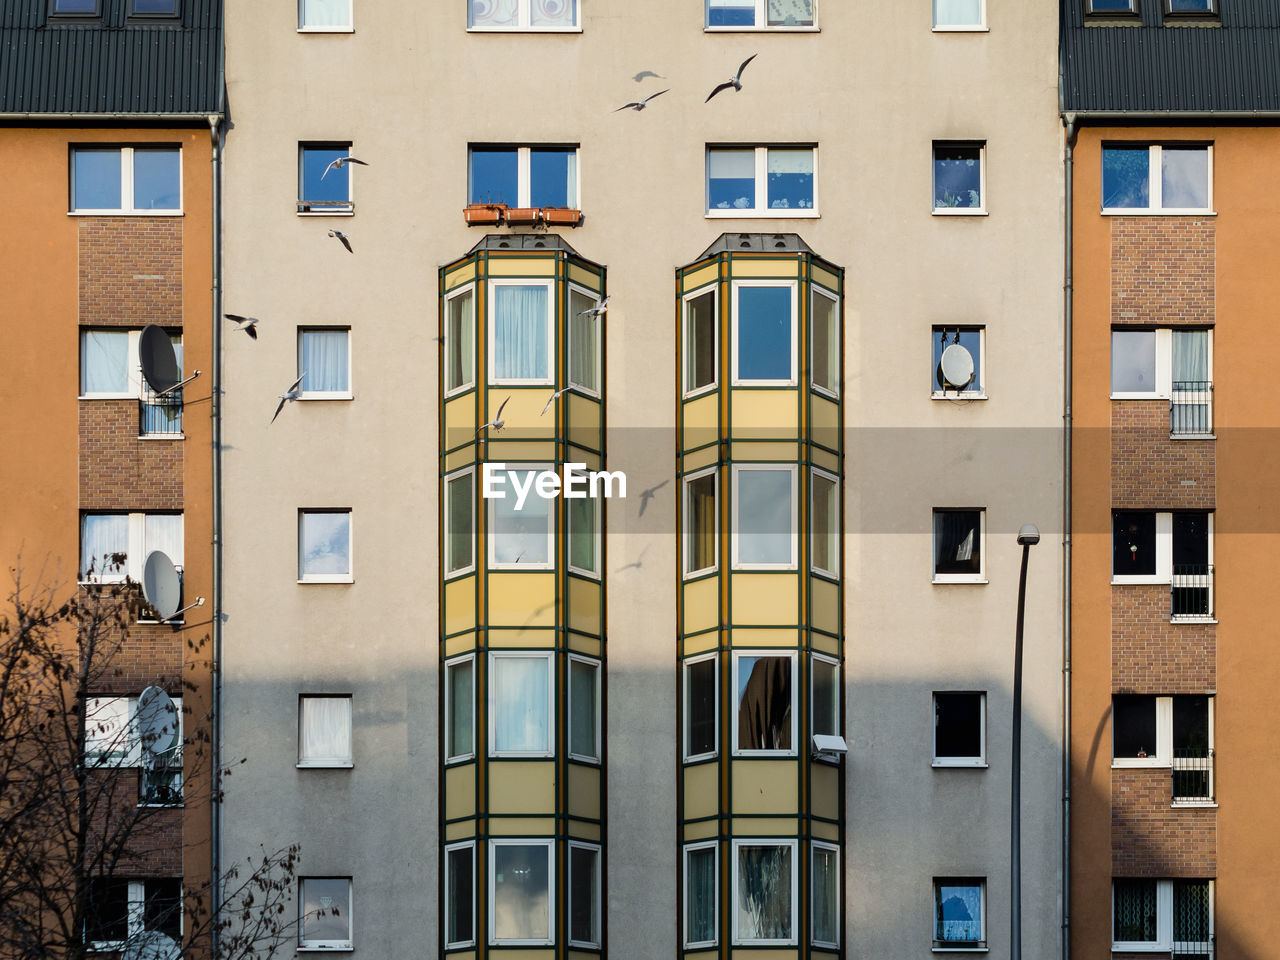 window, built structure, building exterior, architecture, building, no people, residential district, low angle view, glass - material, day, city, full frame, outdoors, backgrounds, side by side, apartment, sunlight, nature, repetition, in a row